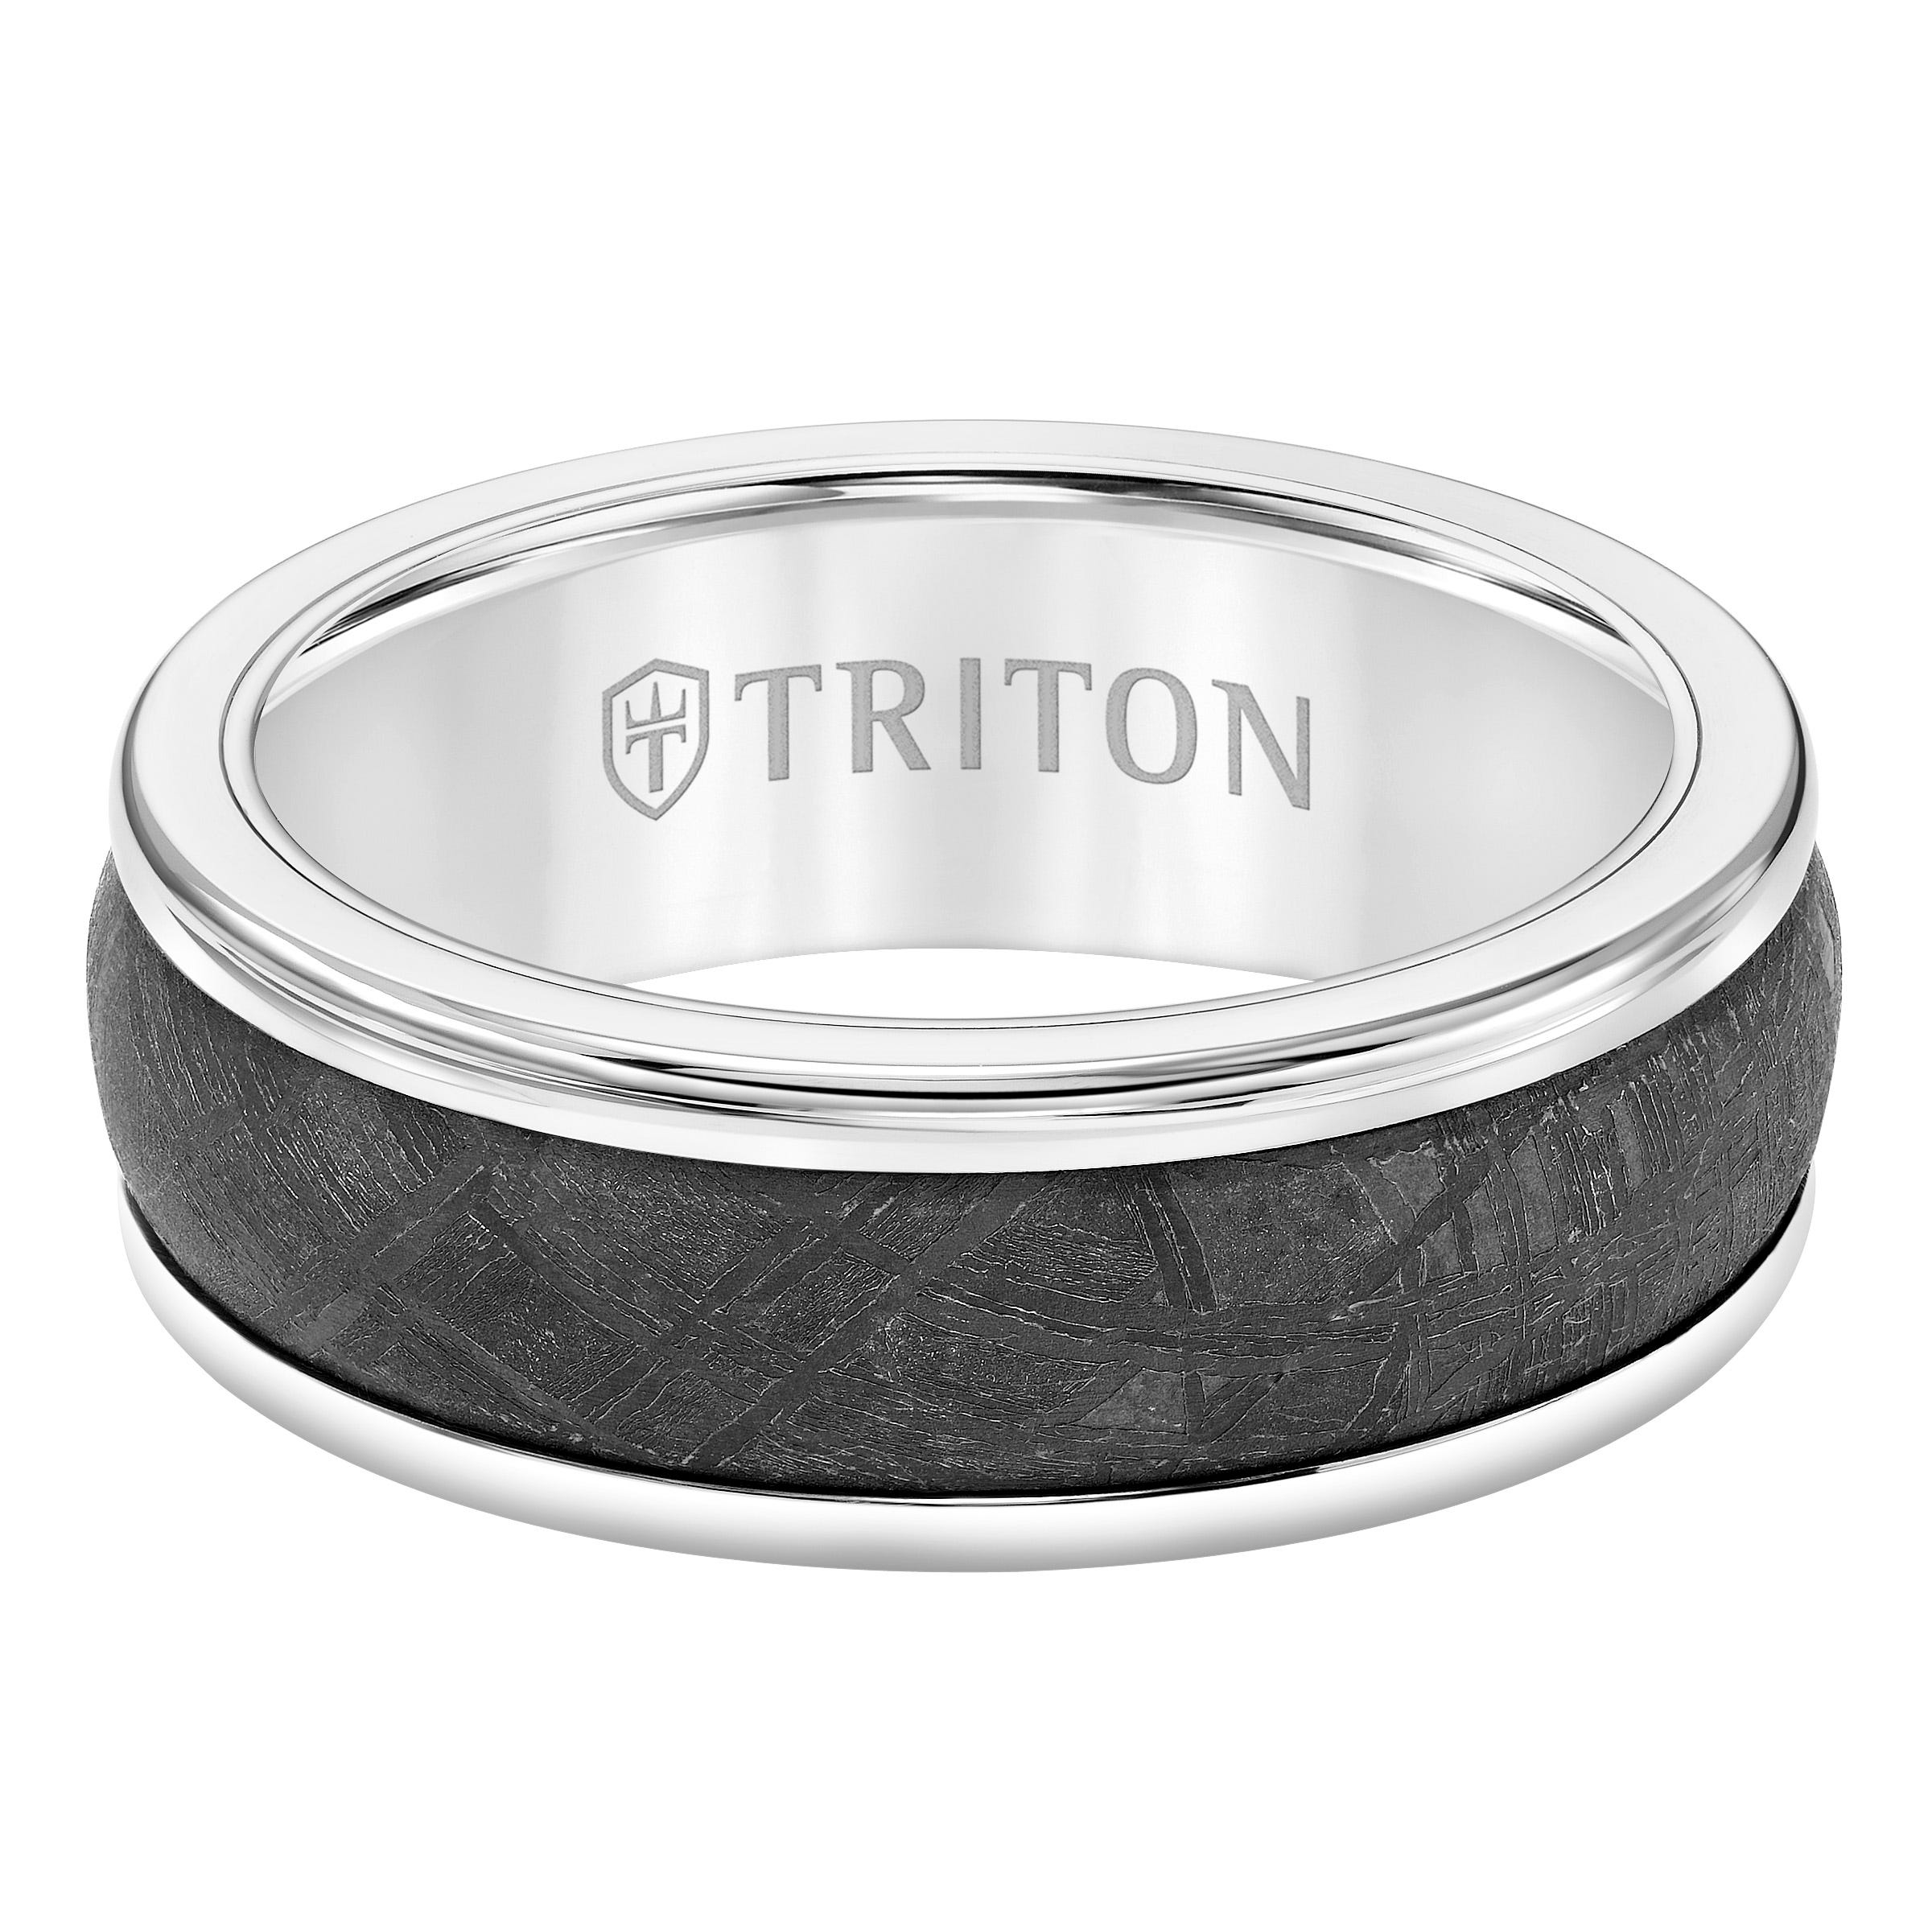 Triton Men's 8mm Meteorite & White Tungsten Carbide Band